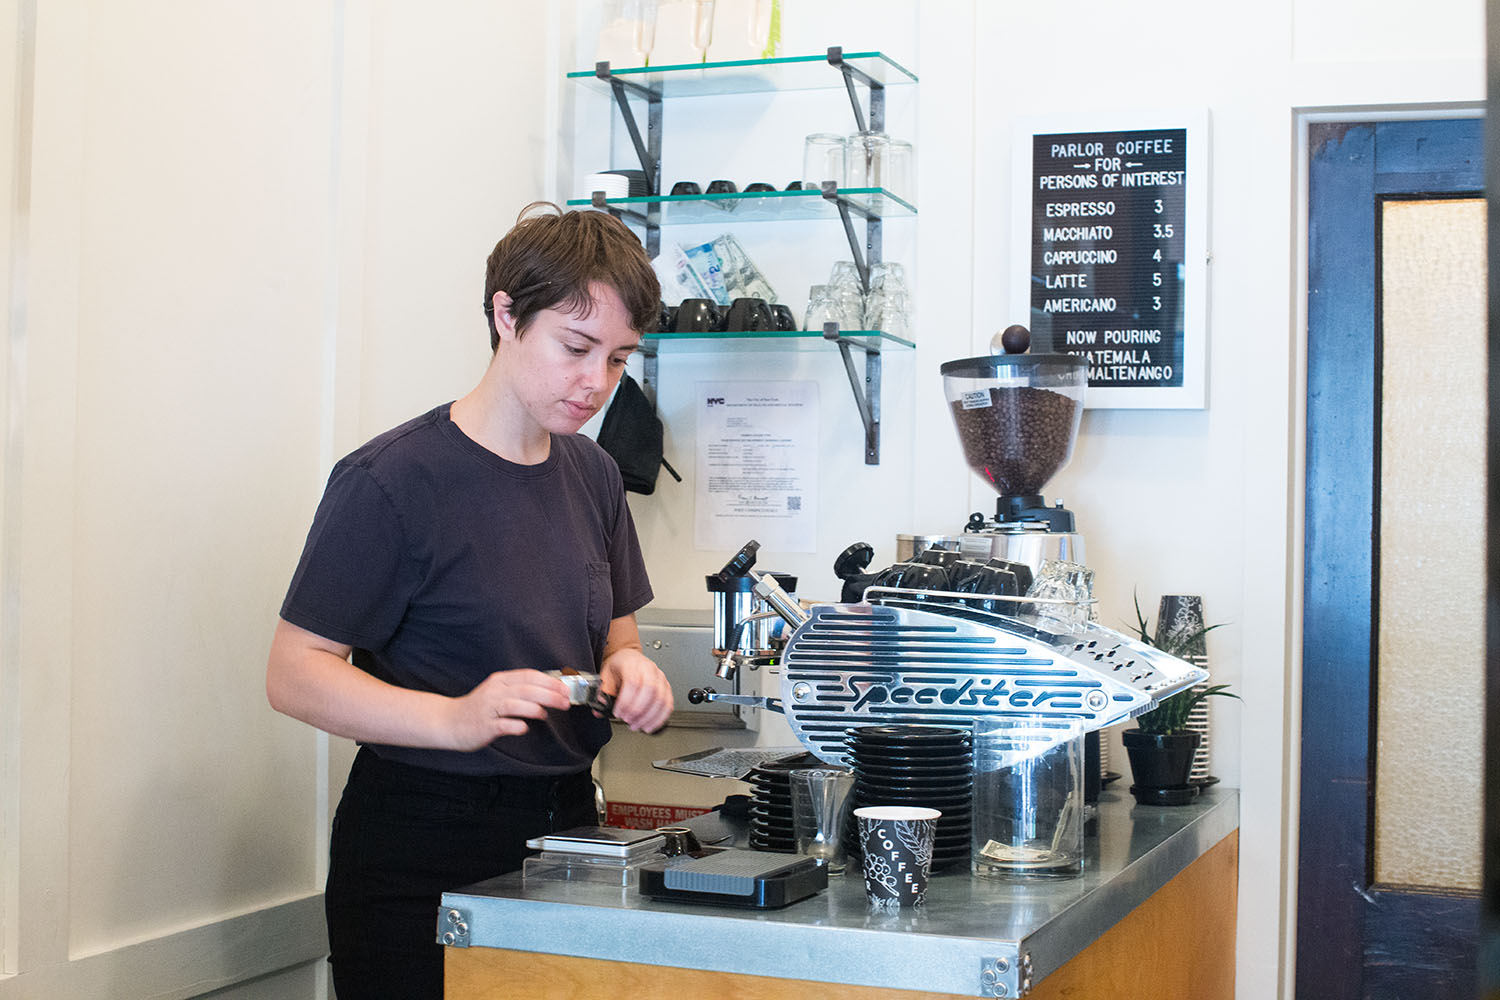 Claire, a barista at Parlor Coffee, makes us an Americano. Parlor Coffee is roasted in nearby Bedford-Stuyvesant.  Parlor Coffee  at  Persons of Interest , 84 Havemeyer Street, Brooklyn.